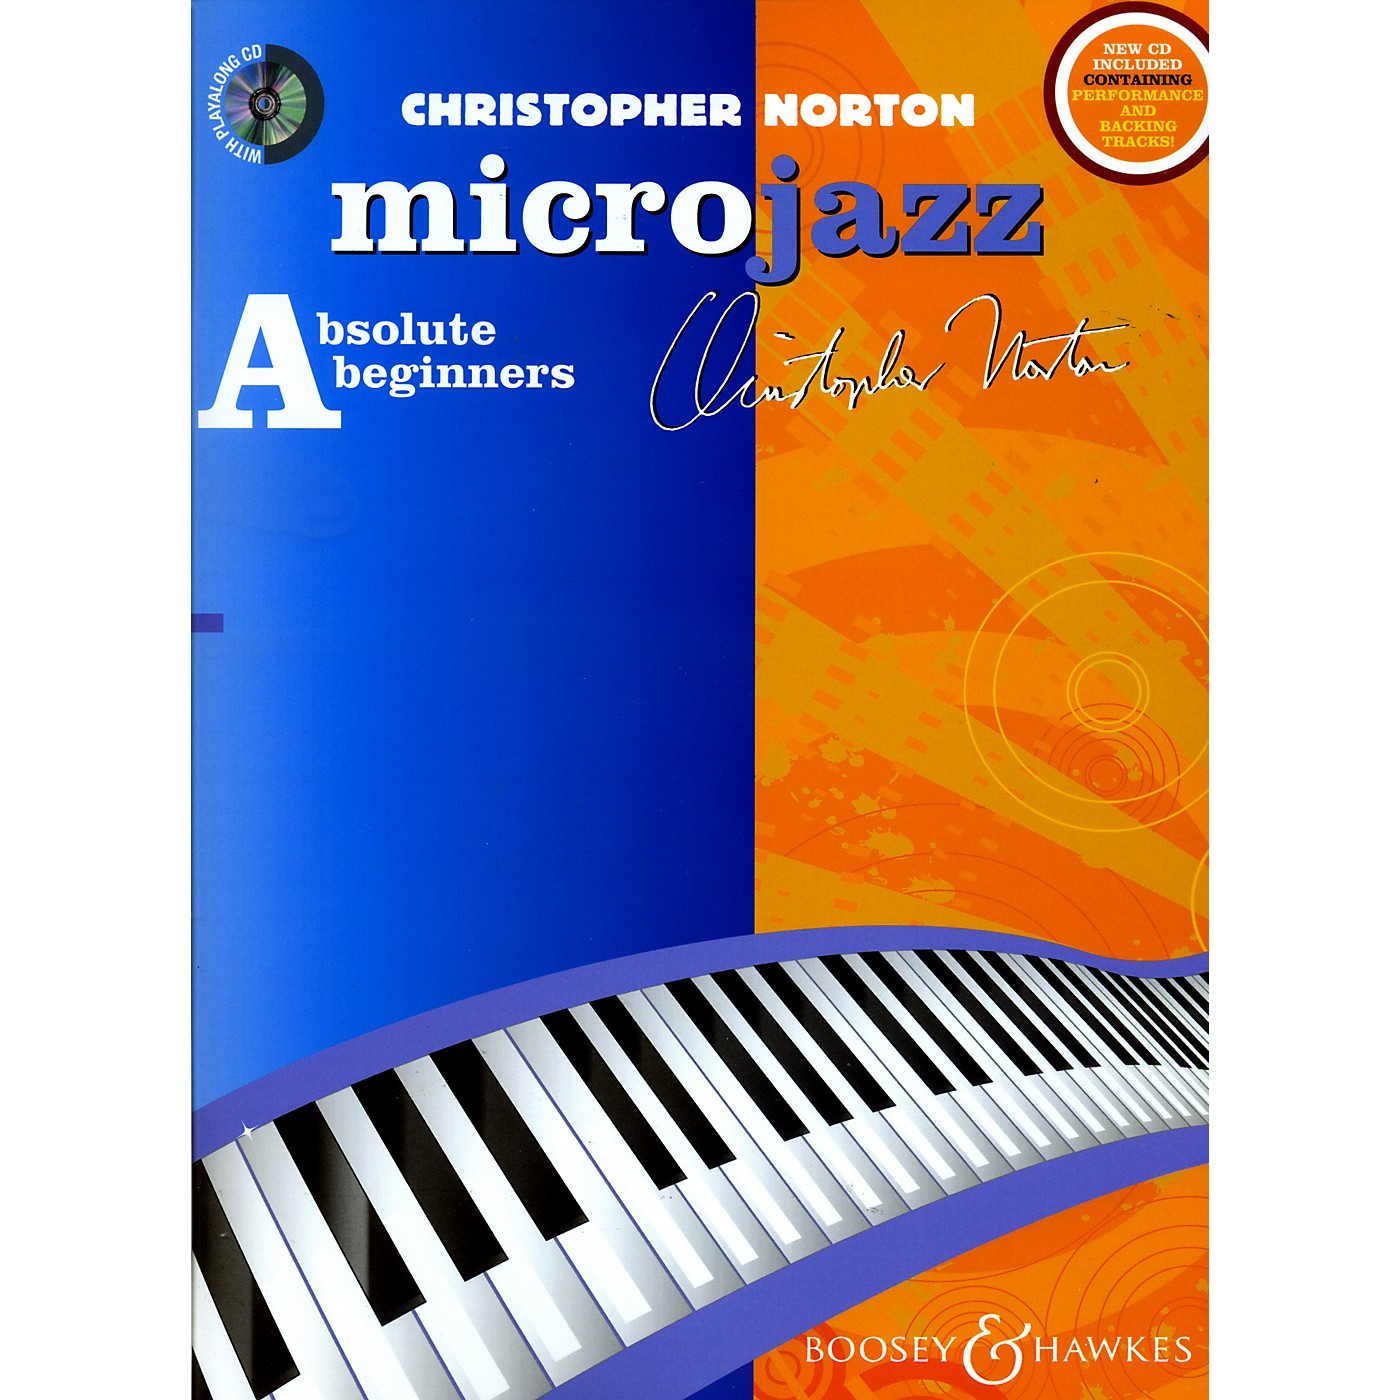 Hal Leonard Microjazz For Absolute Beginners New Edition For Piano (Book/CD) thumbnail